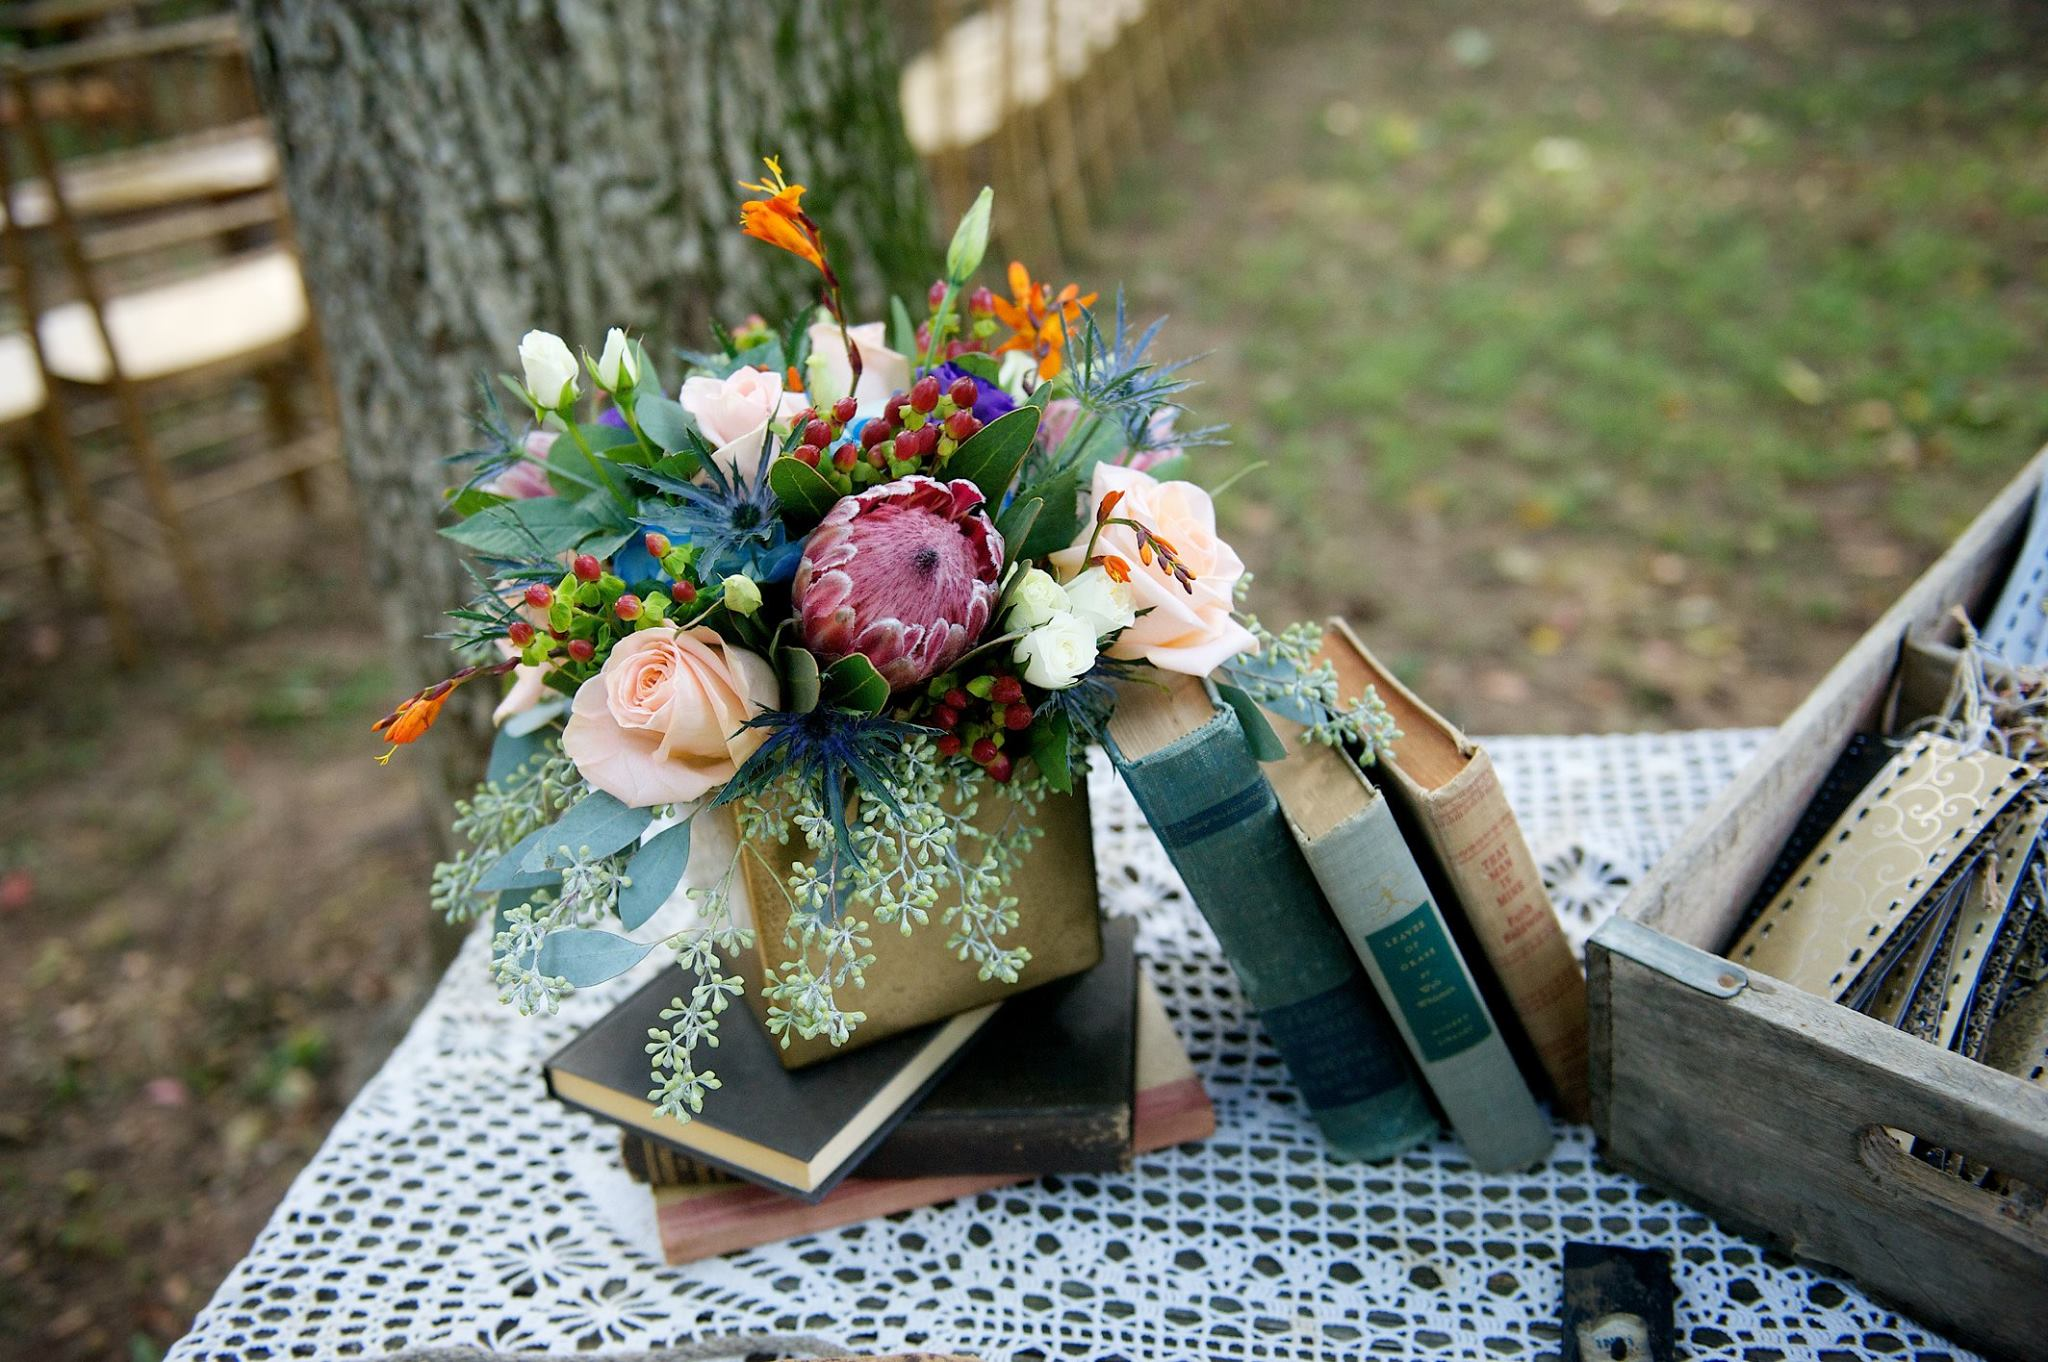 Danielle Davis Art/Photography , from  Emily + Blake 's wedding at The Barn. Protea always makes a statement!